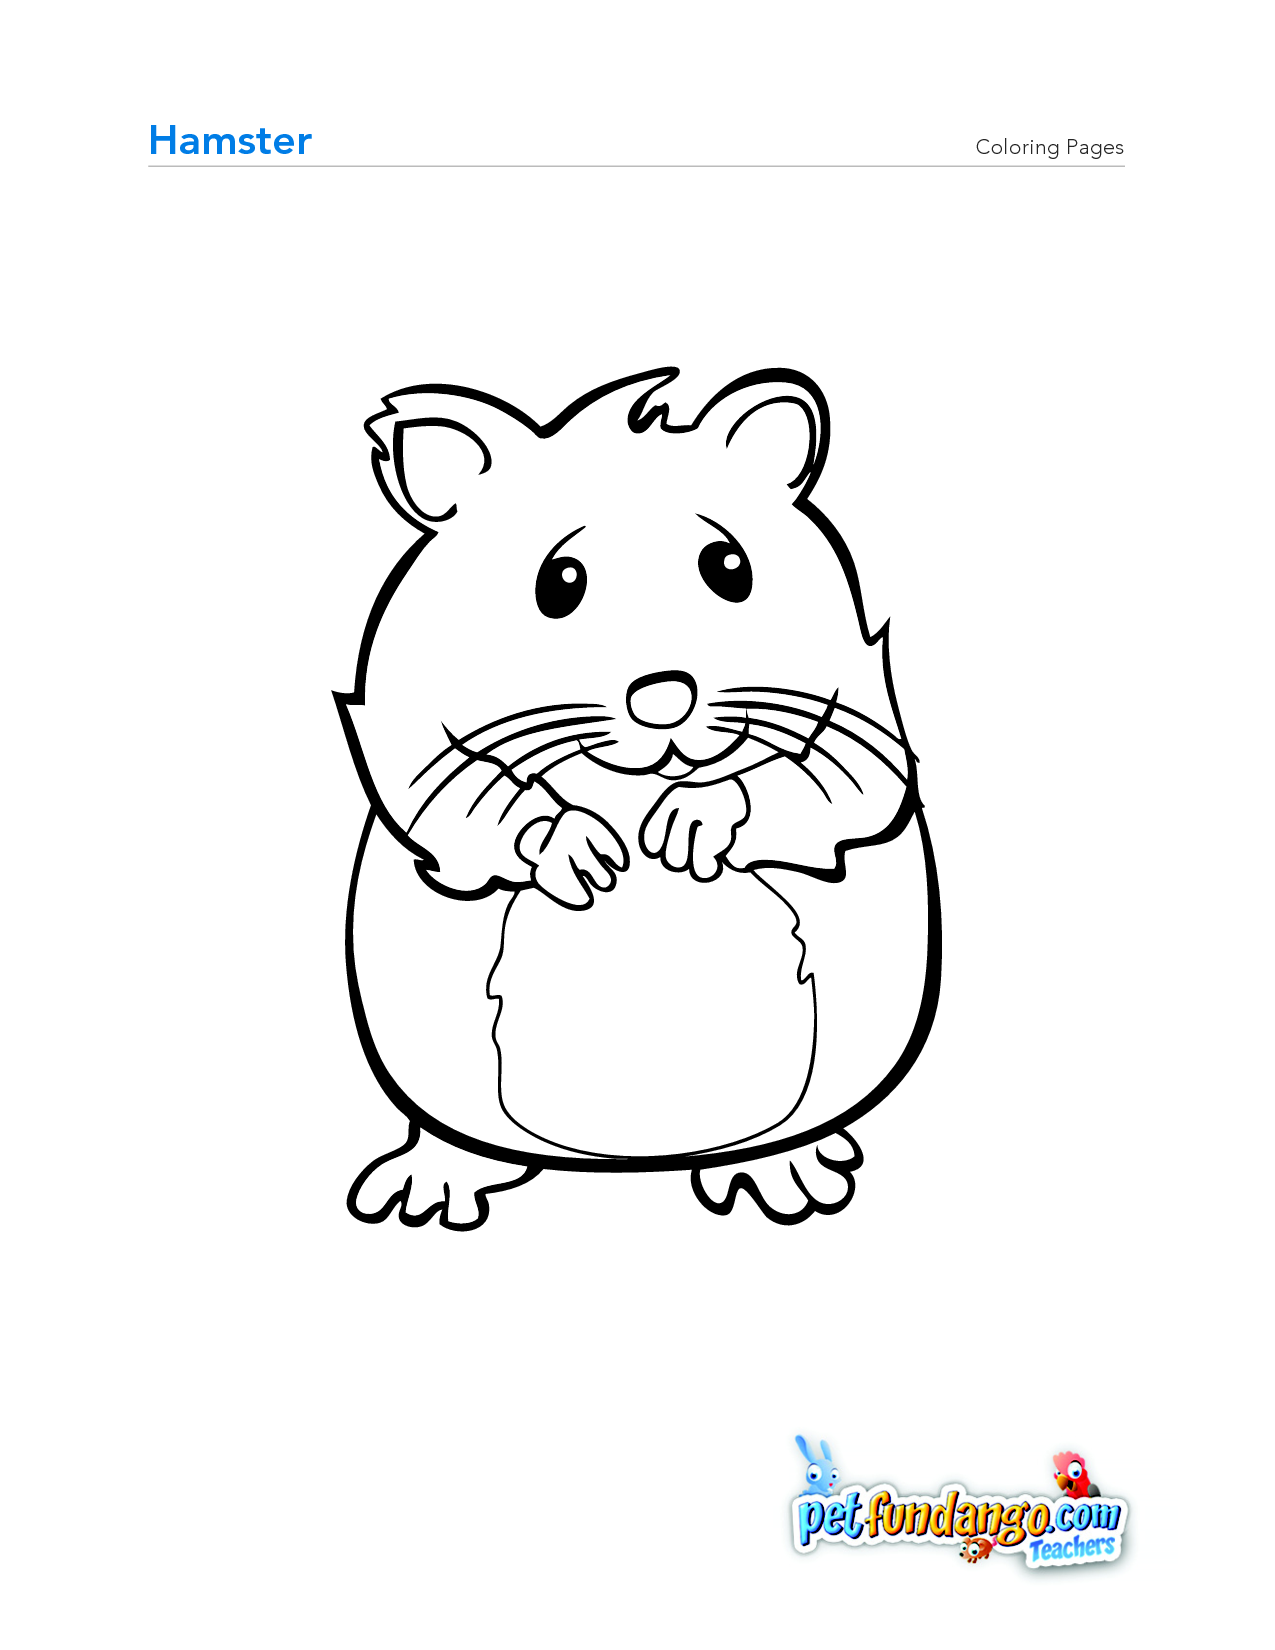 Free coloring pages hamsters - Does Your Kids Love Enjoy Keeping This Cute Looking Endearing Hamster As Pet Animal Then Give Them These Amazing Free Printable Hamster Coloring Pages